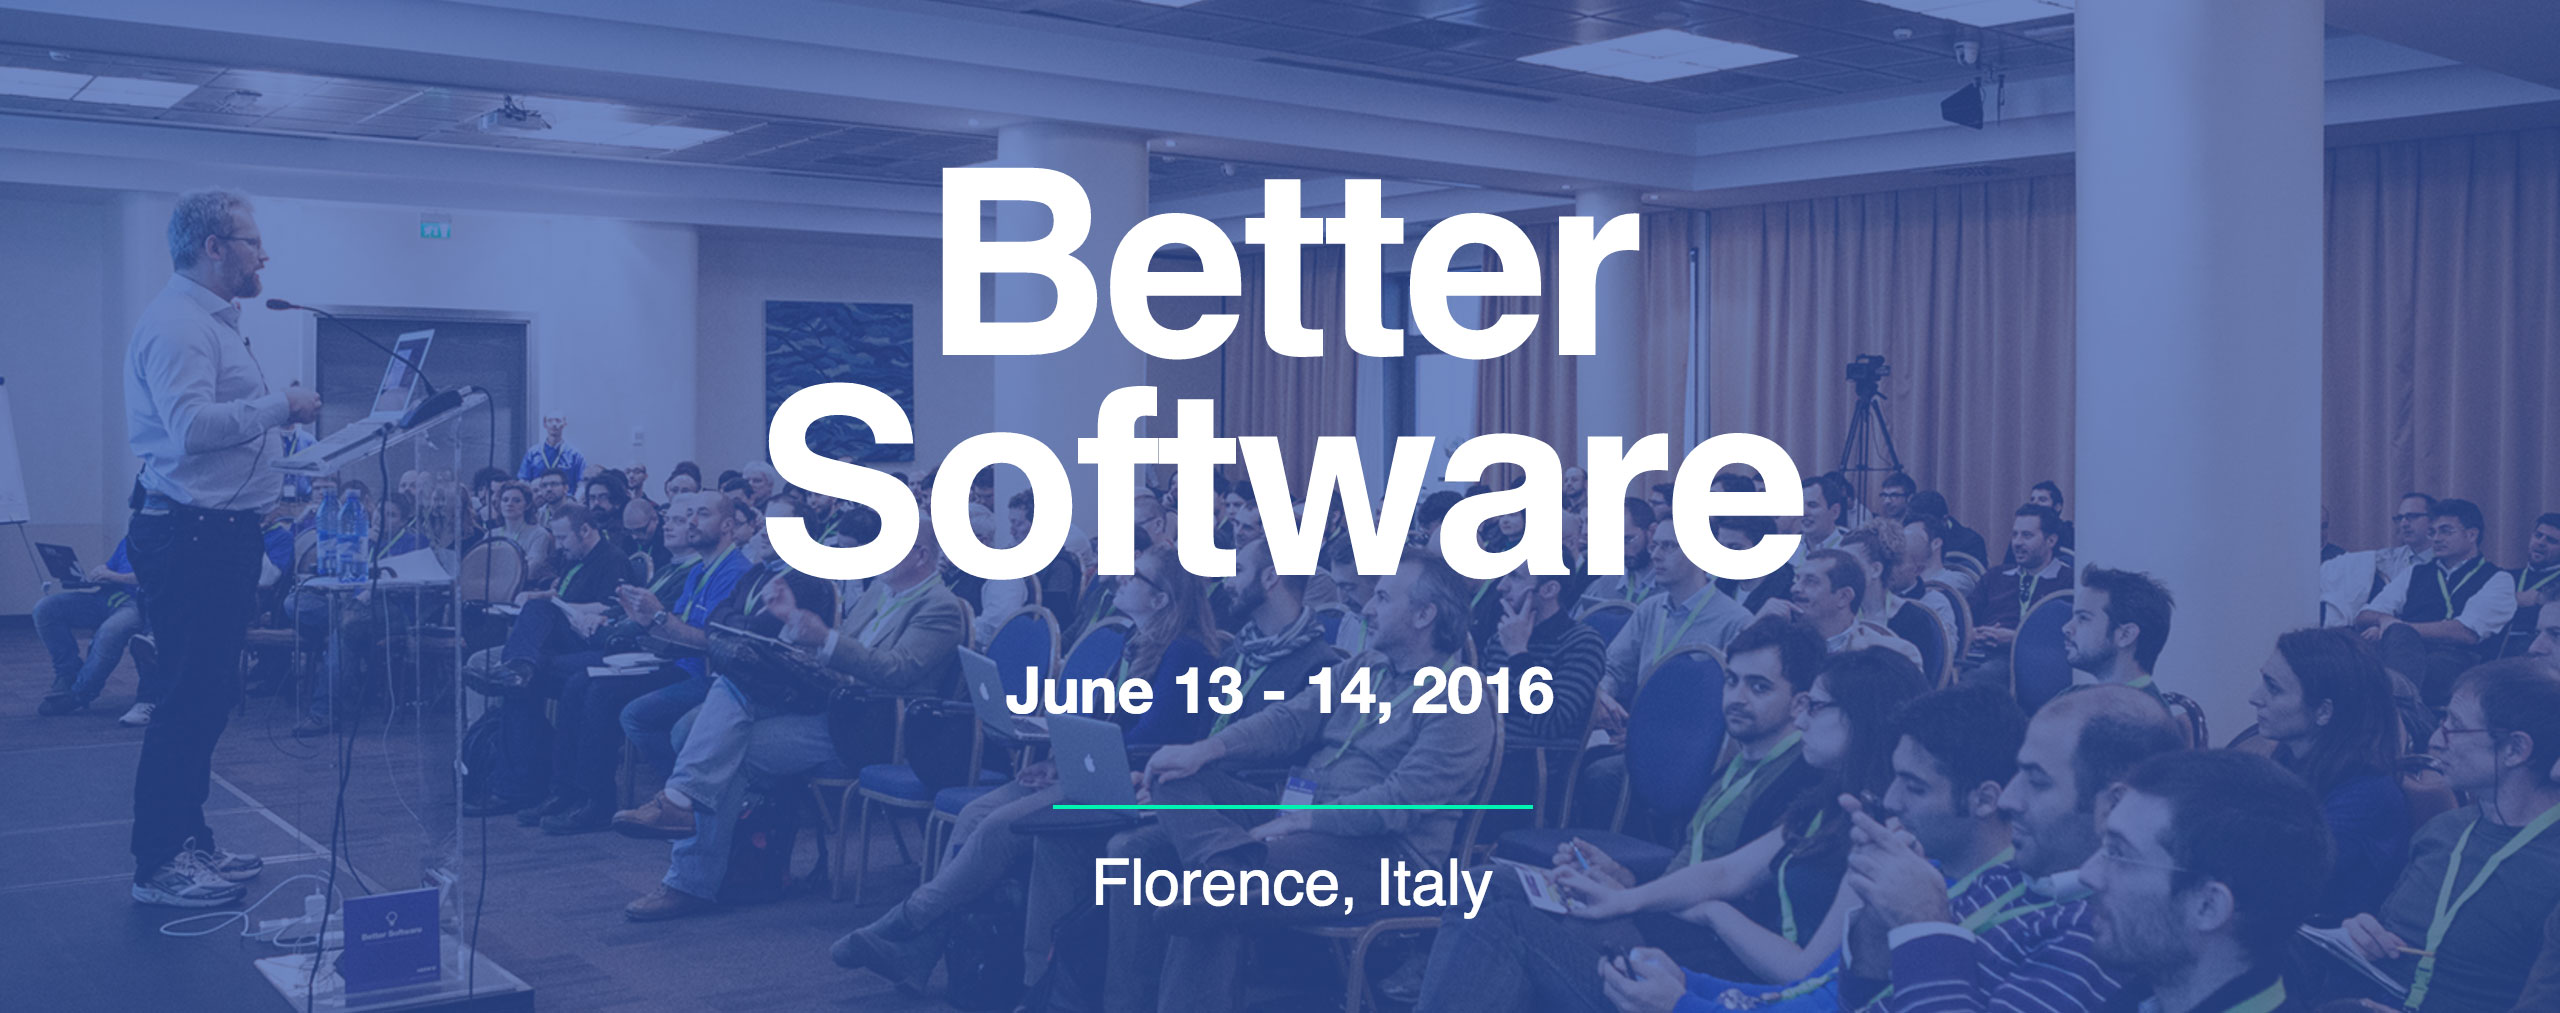 better software conference firenze